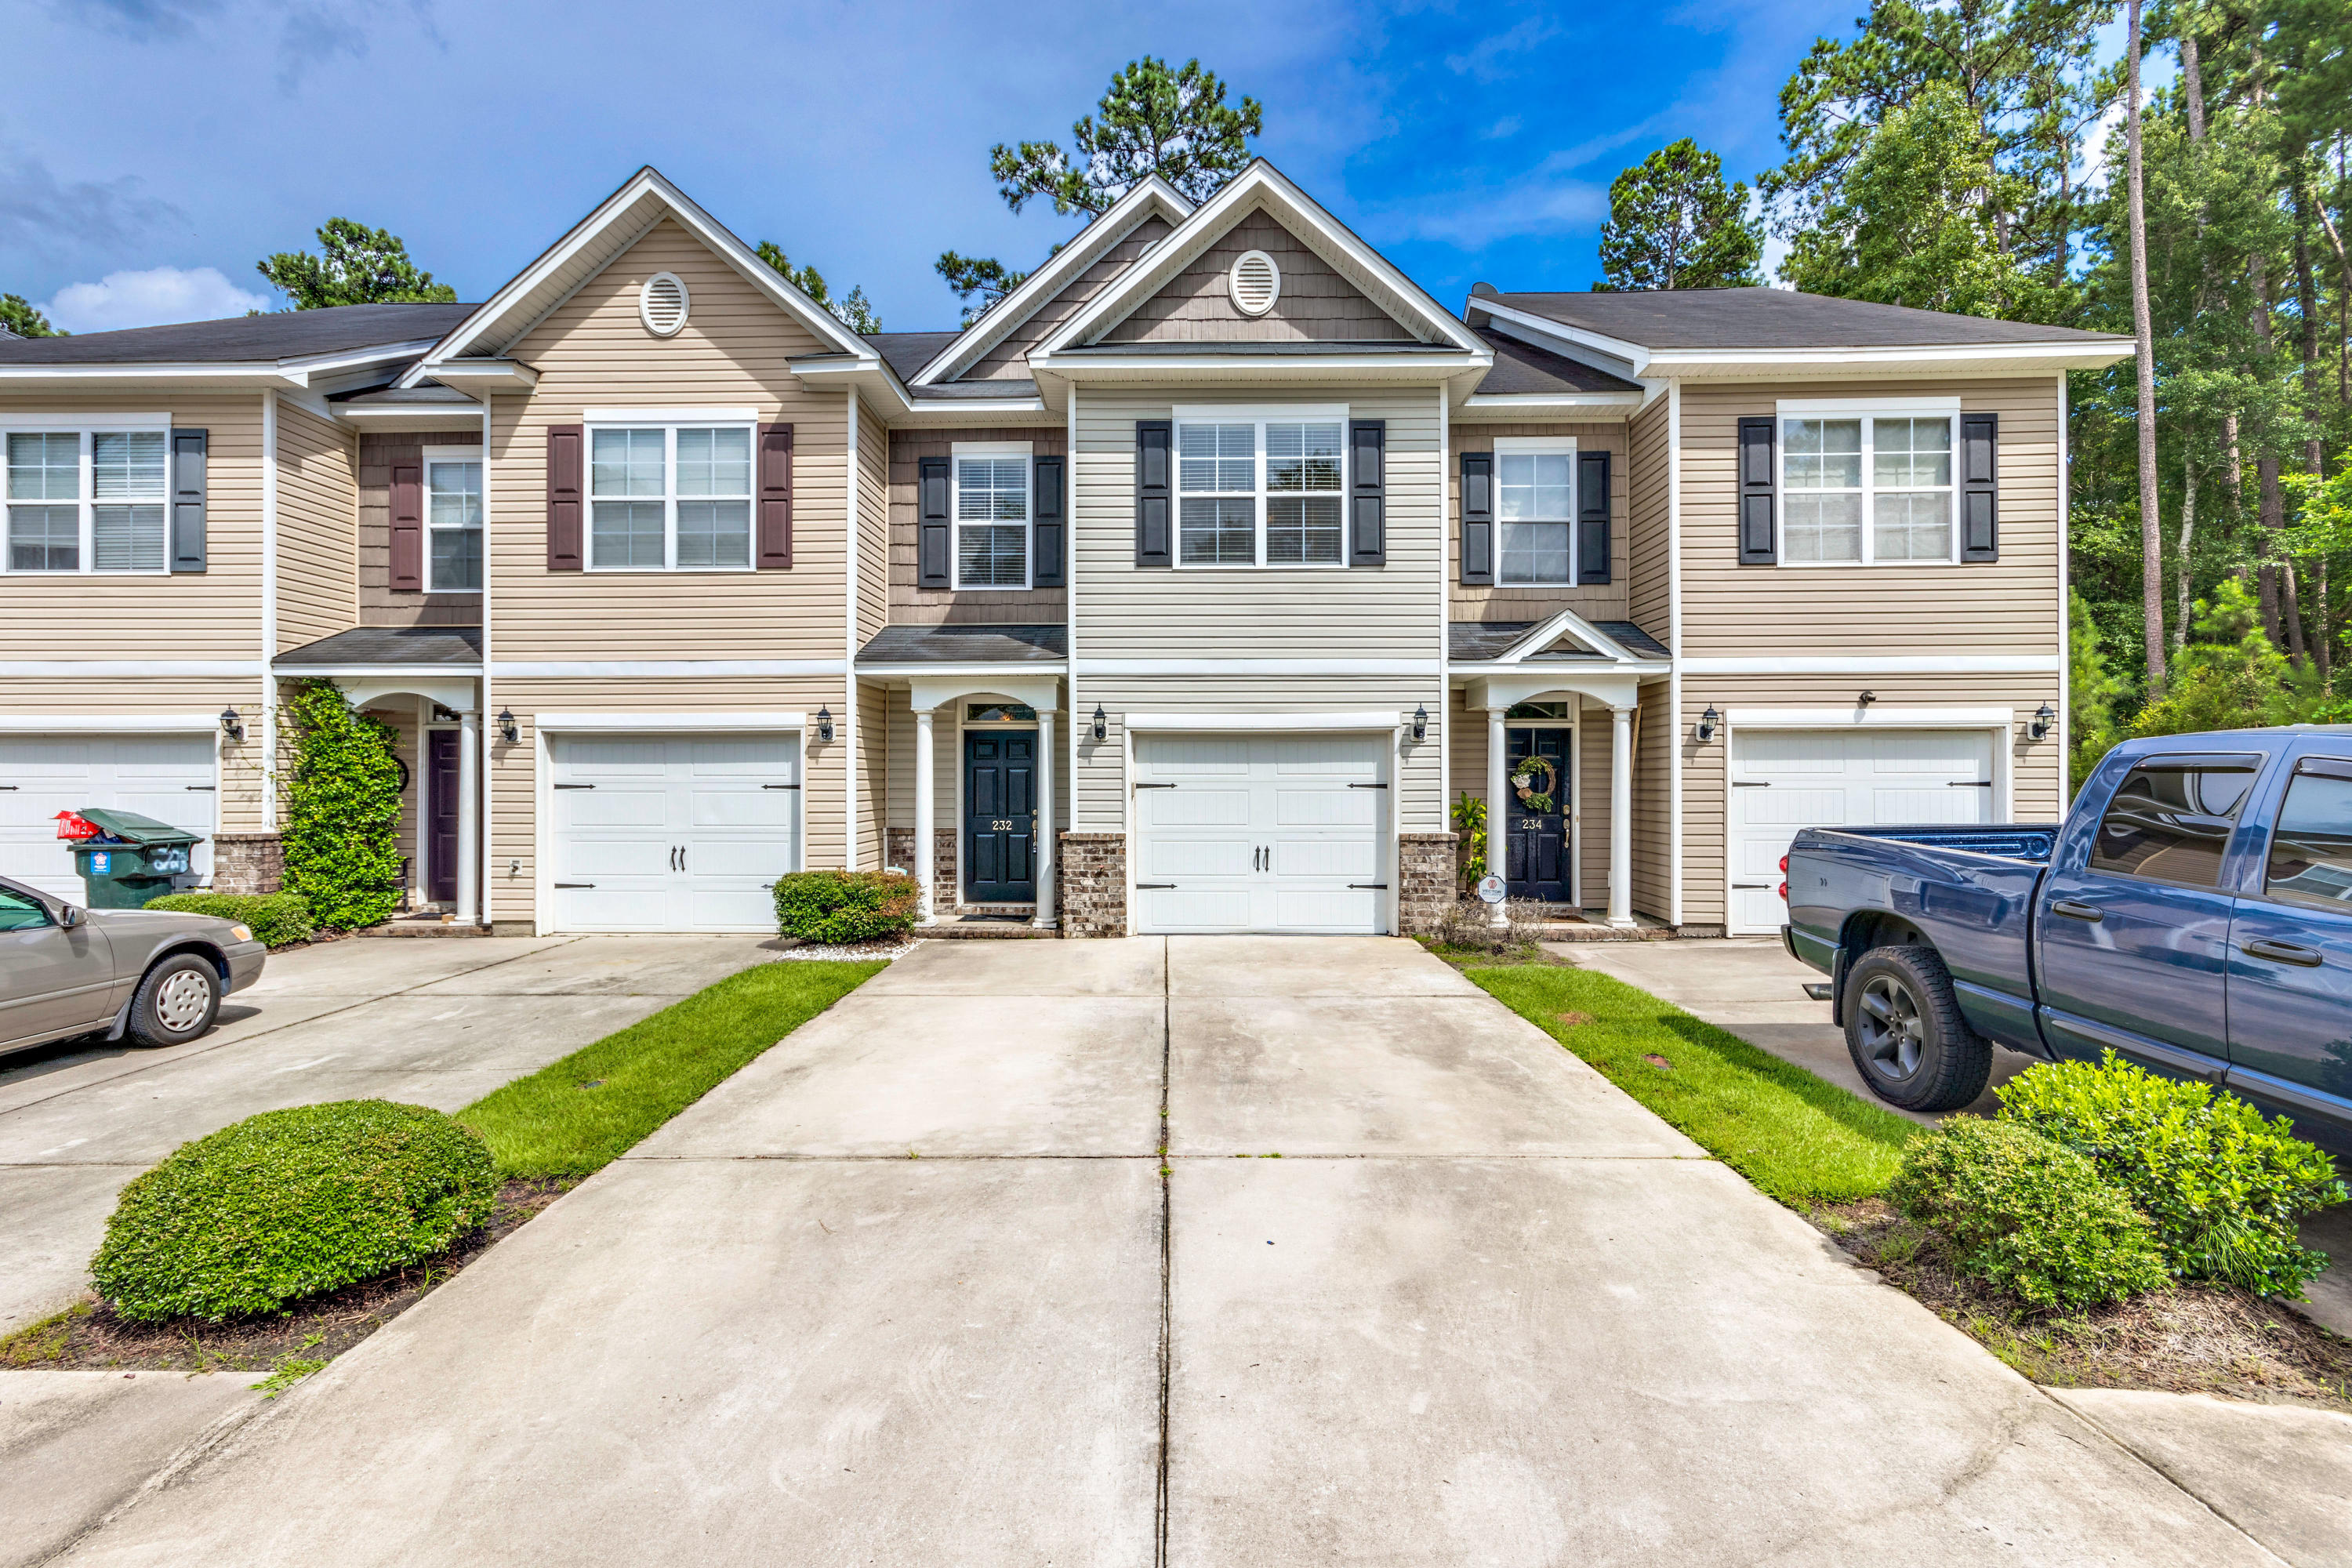 Townhomes at Berkeley Commons Homes For Sale - 232 Lamplighter, Summerville, SC - 15